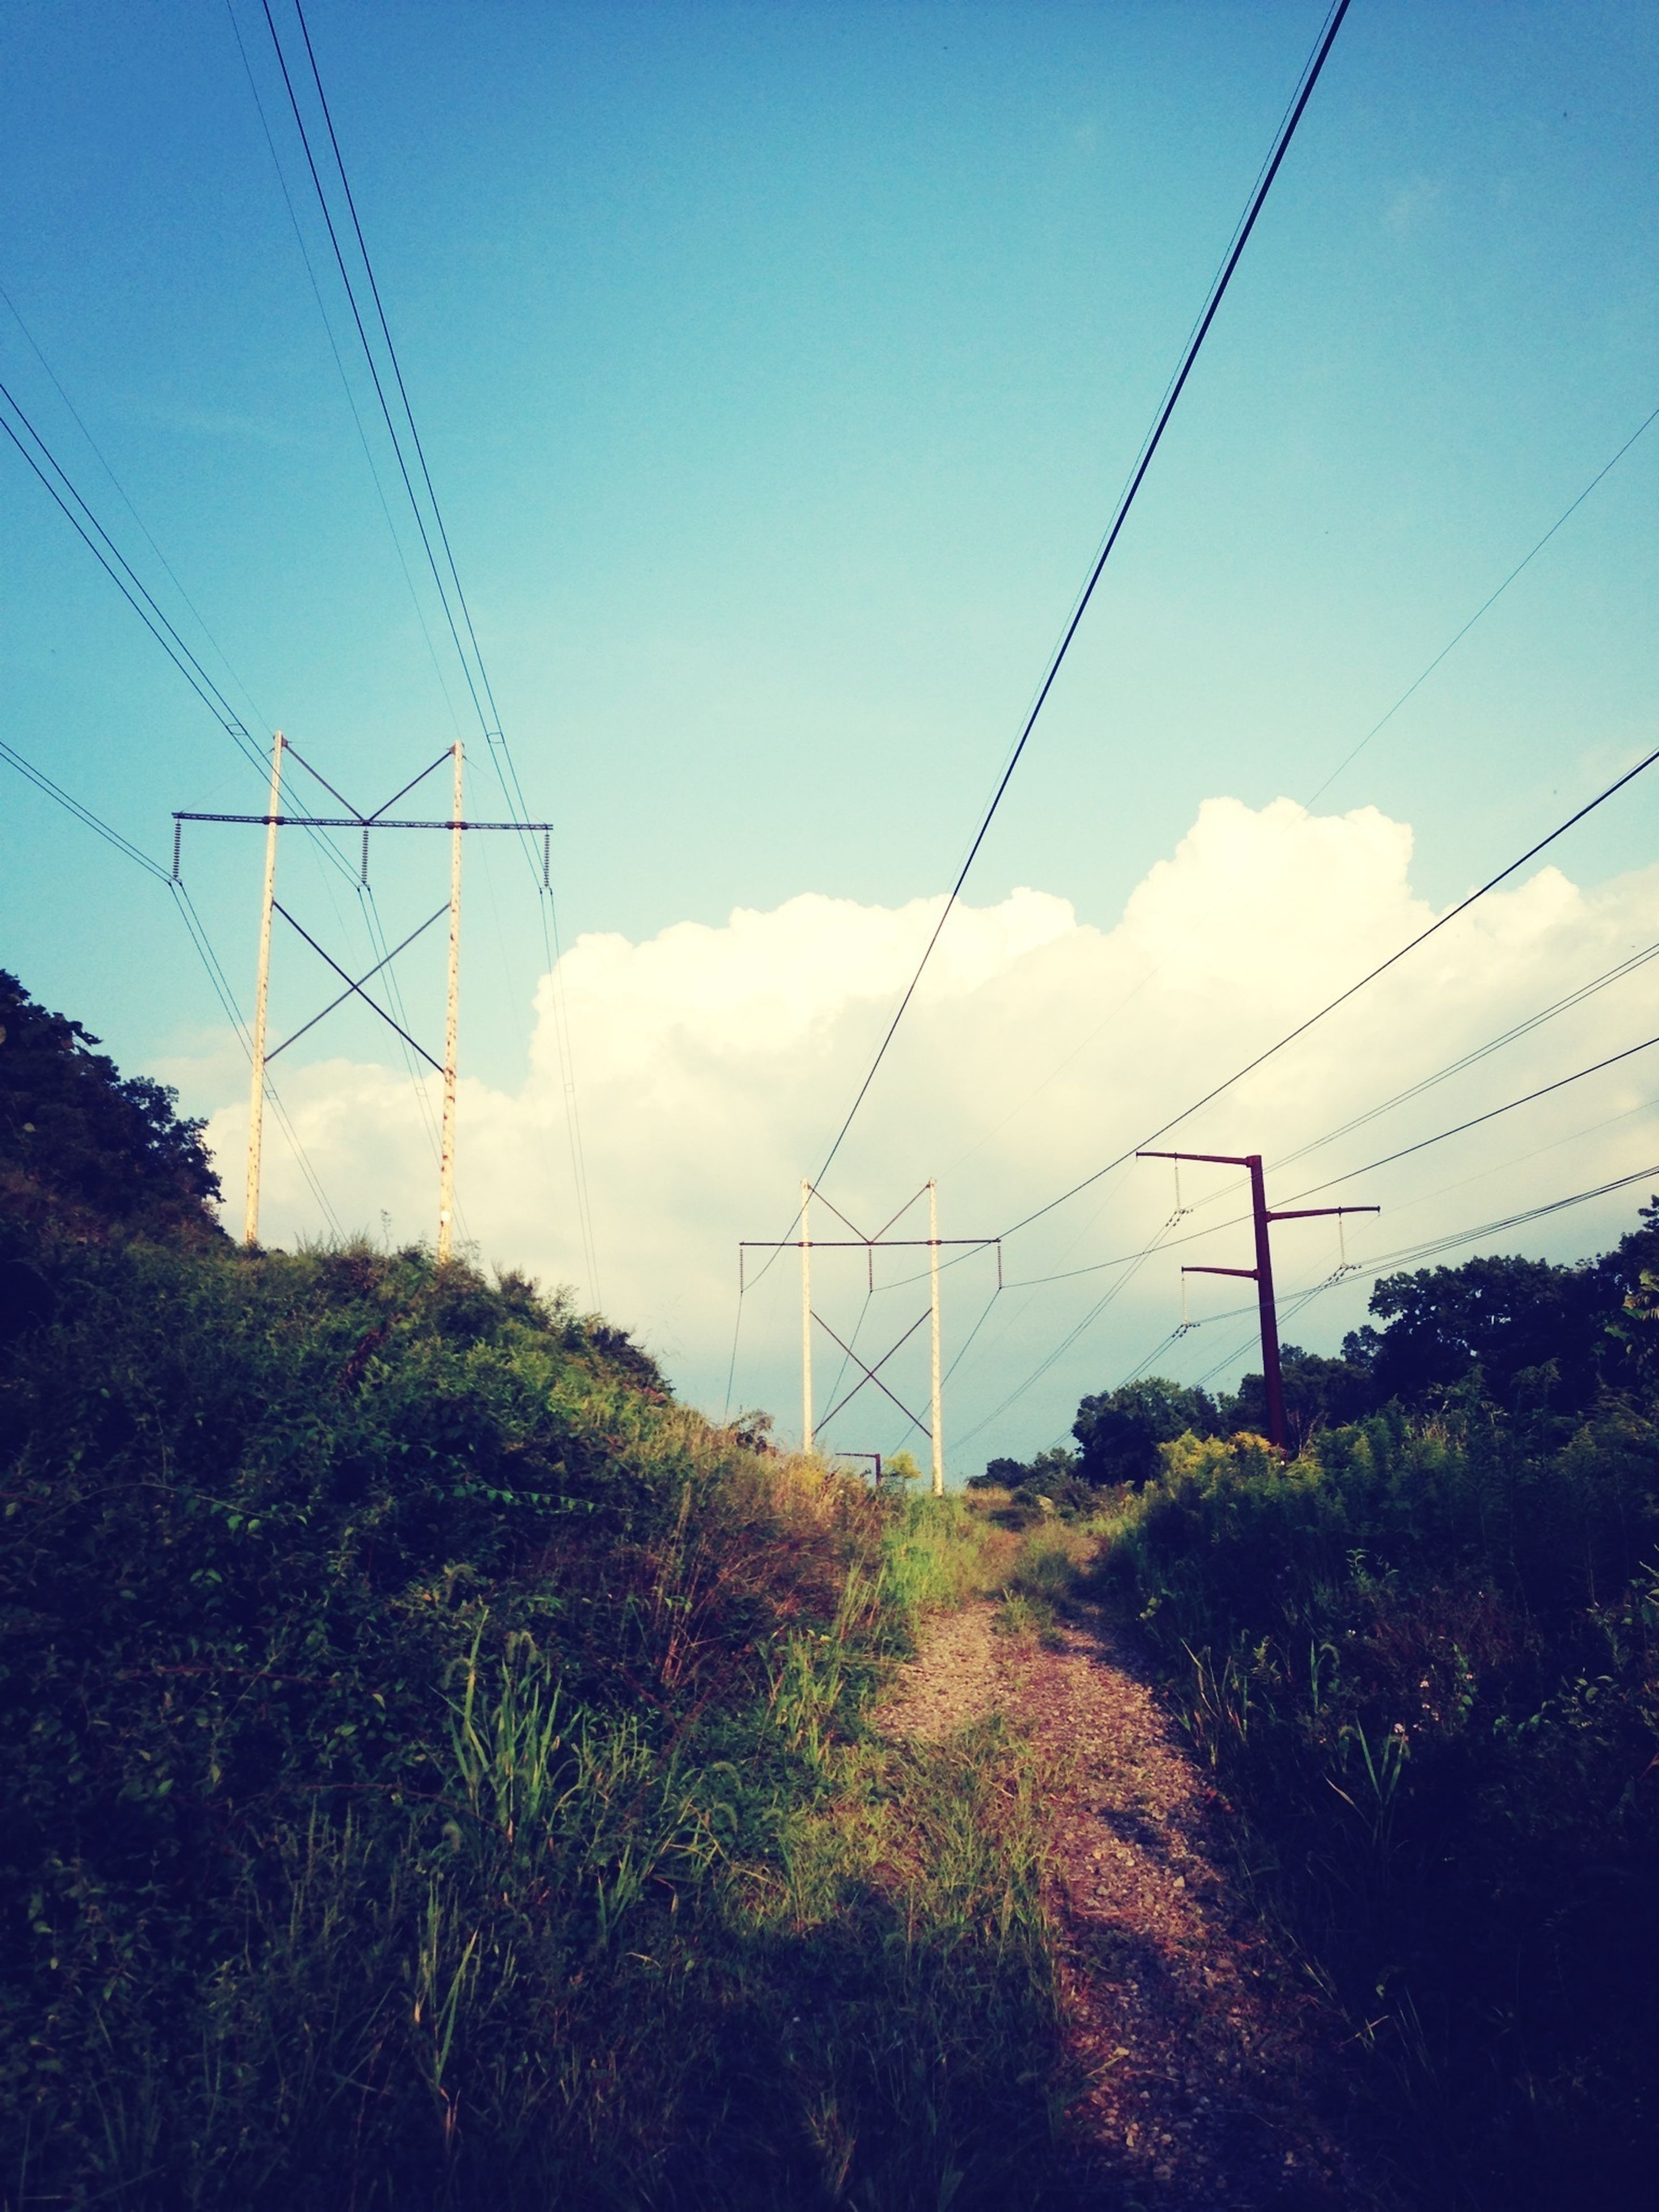 power line, electricity pylon, electricity, power supply, cable, connection, fuel and power generation, sky, power cable, technology, transportation, tree, nature, outdoors, landscape, telephone line, no people, day, telephone pole, cloud - sky